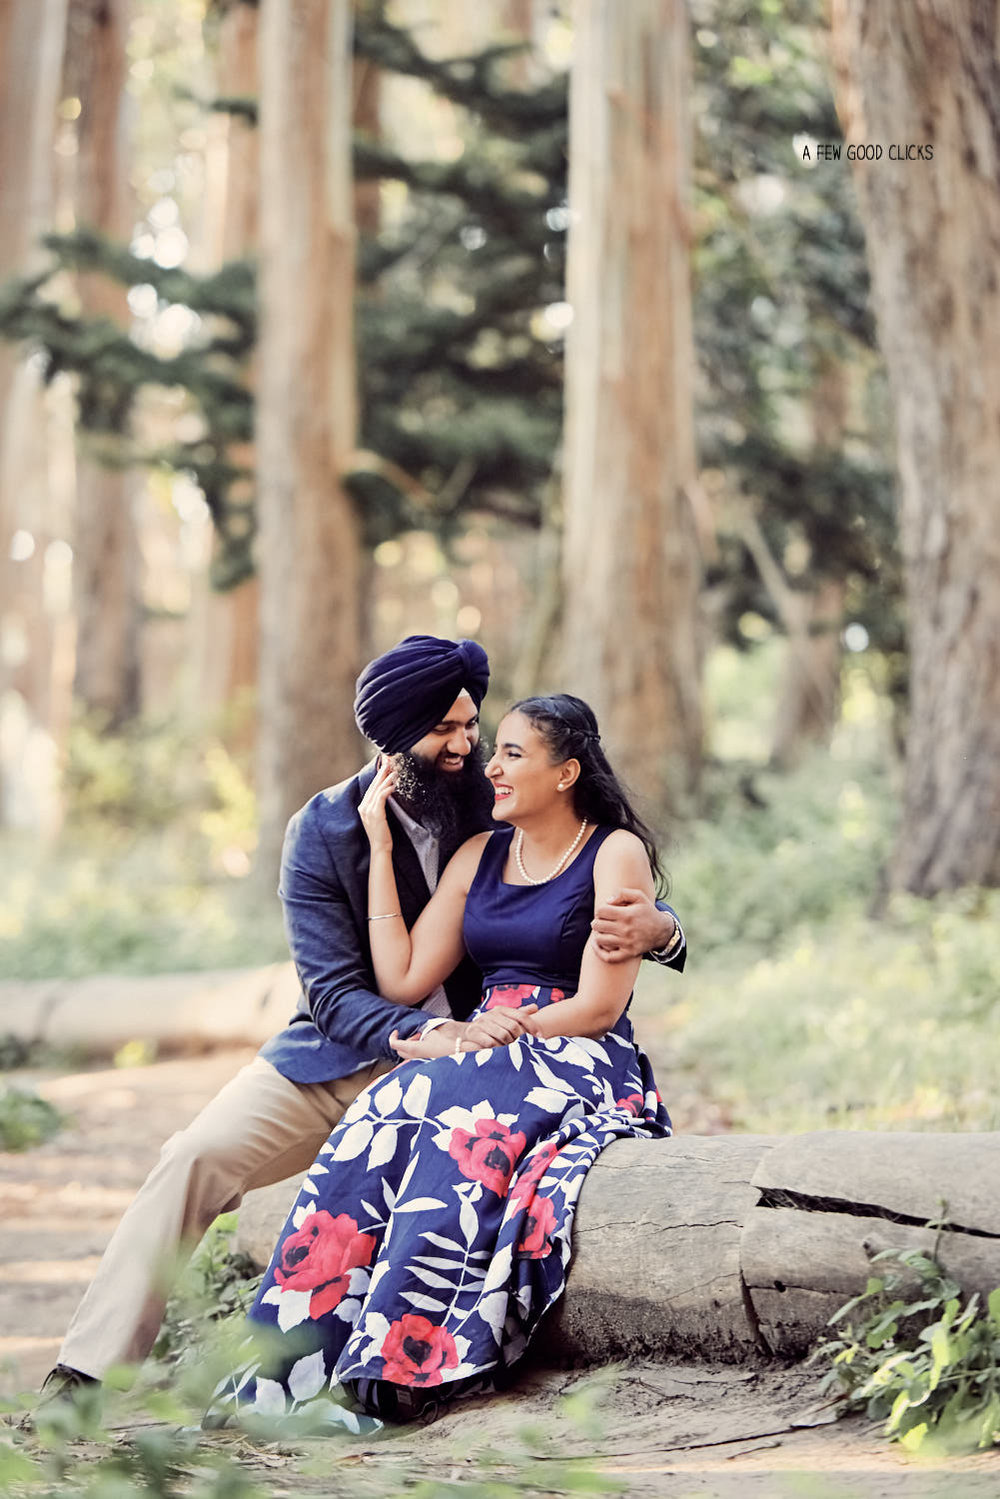 presidio-engagement-session-photography-san-francisco 58.jpg